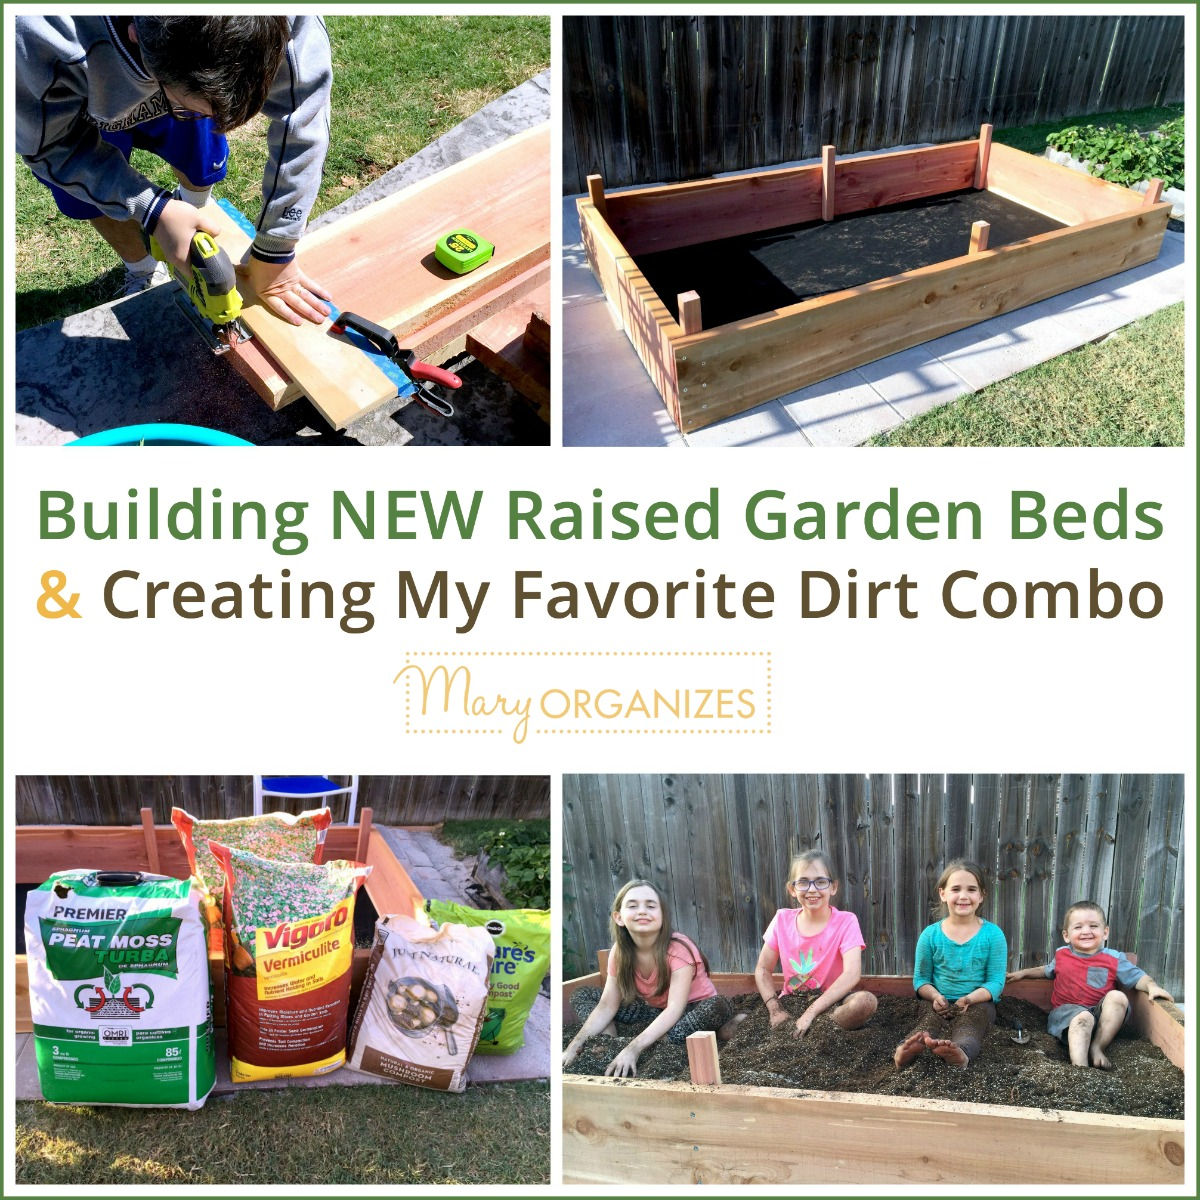 Building NEW Raised Garden Beds & Creating My Favorite Dirt Combo -s